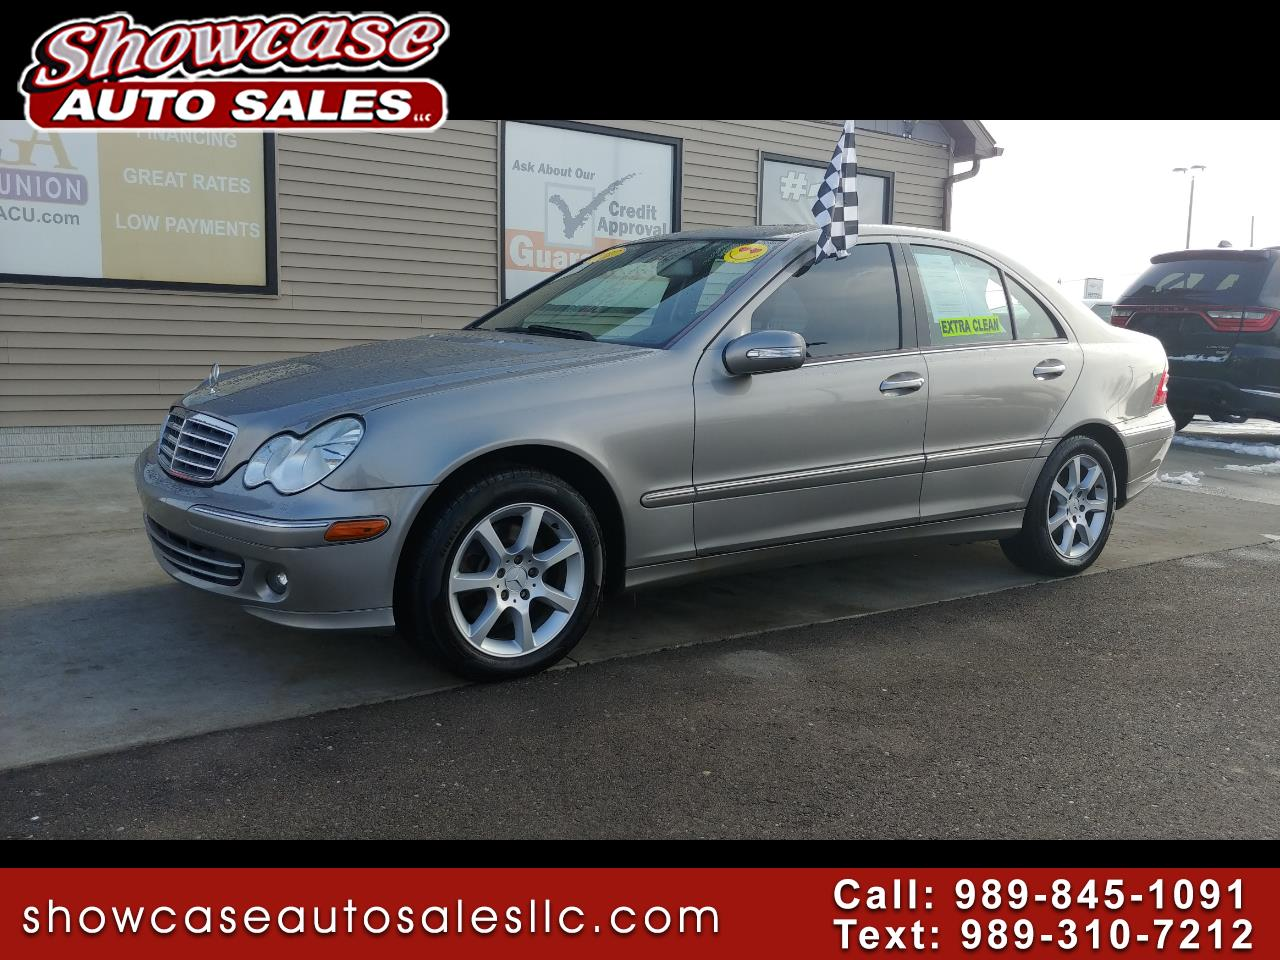 2007 Mercedes-Benz C-Class 4dr Sdn 3.0L Luxury 4MATIC